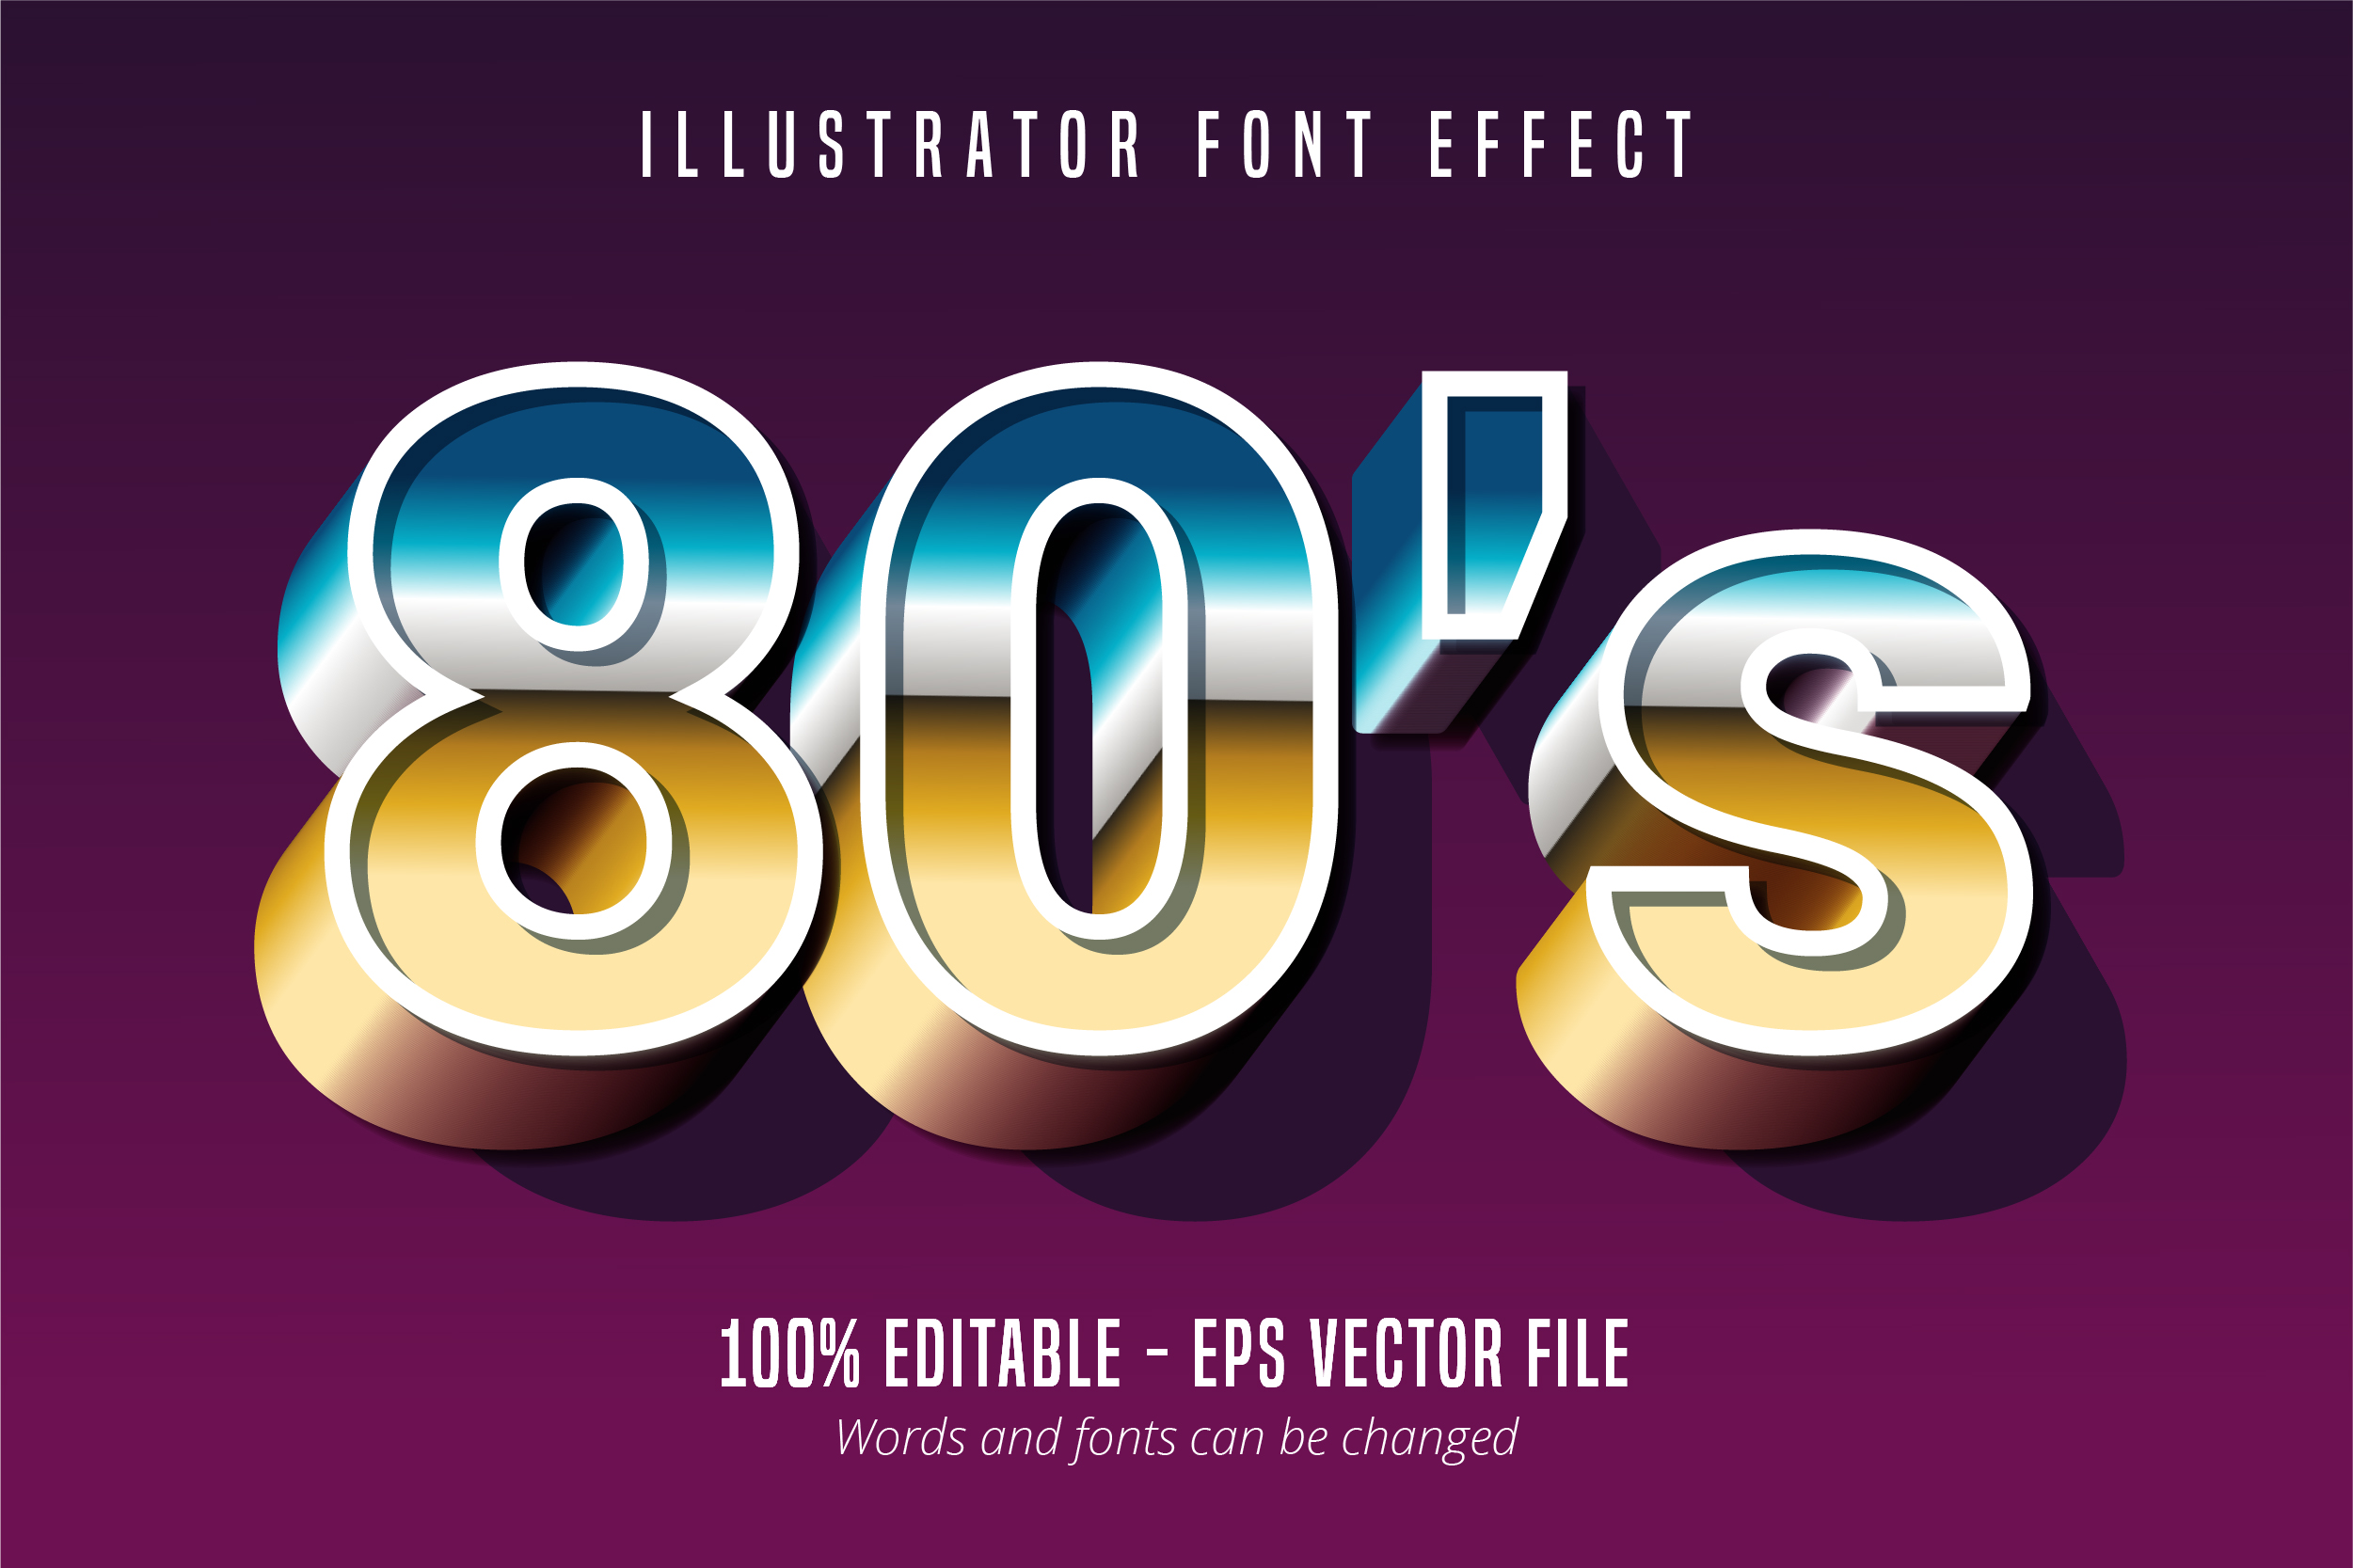 Download Free Bold Script Retro Text Style Font Effect Graphic By Mustafa for Cricut Explore, Silhouette and other cutting machines.